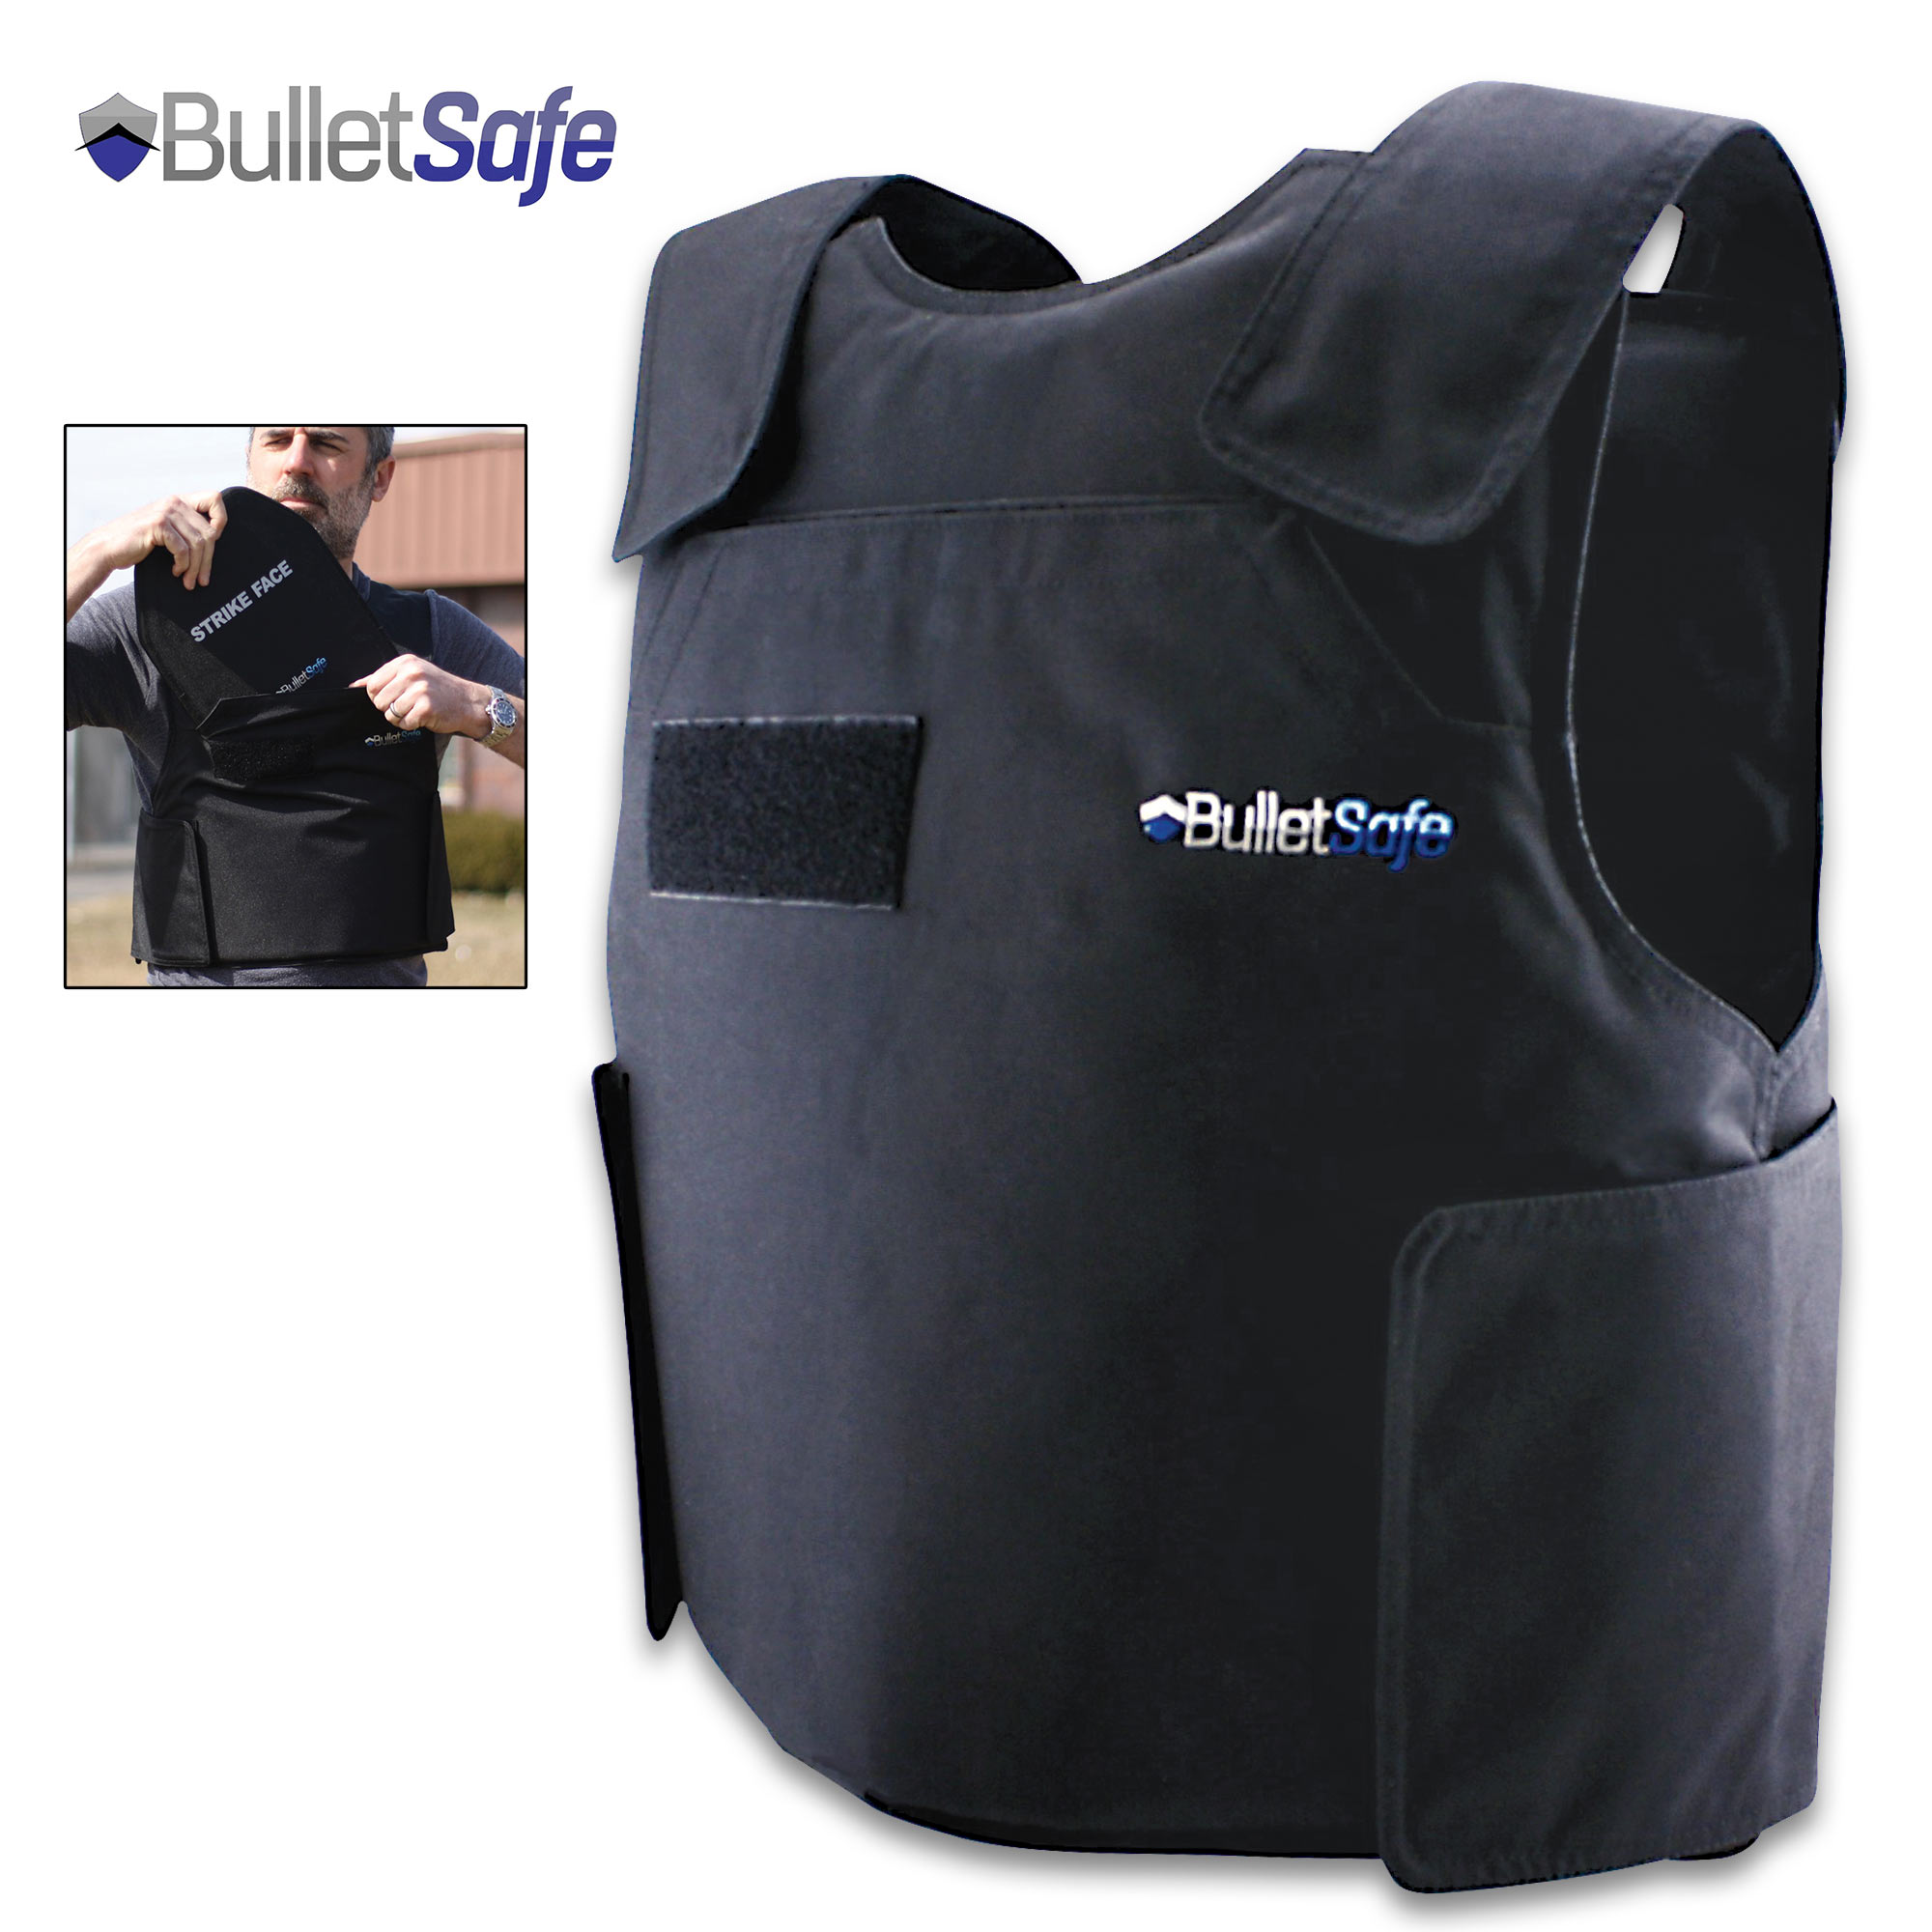 43efa6e38 BulletSafe Bulletproof Vest - NIJ Level IIIA Protection Protects ...